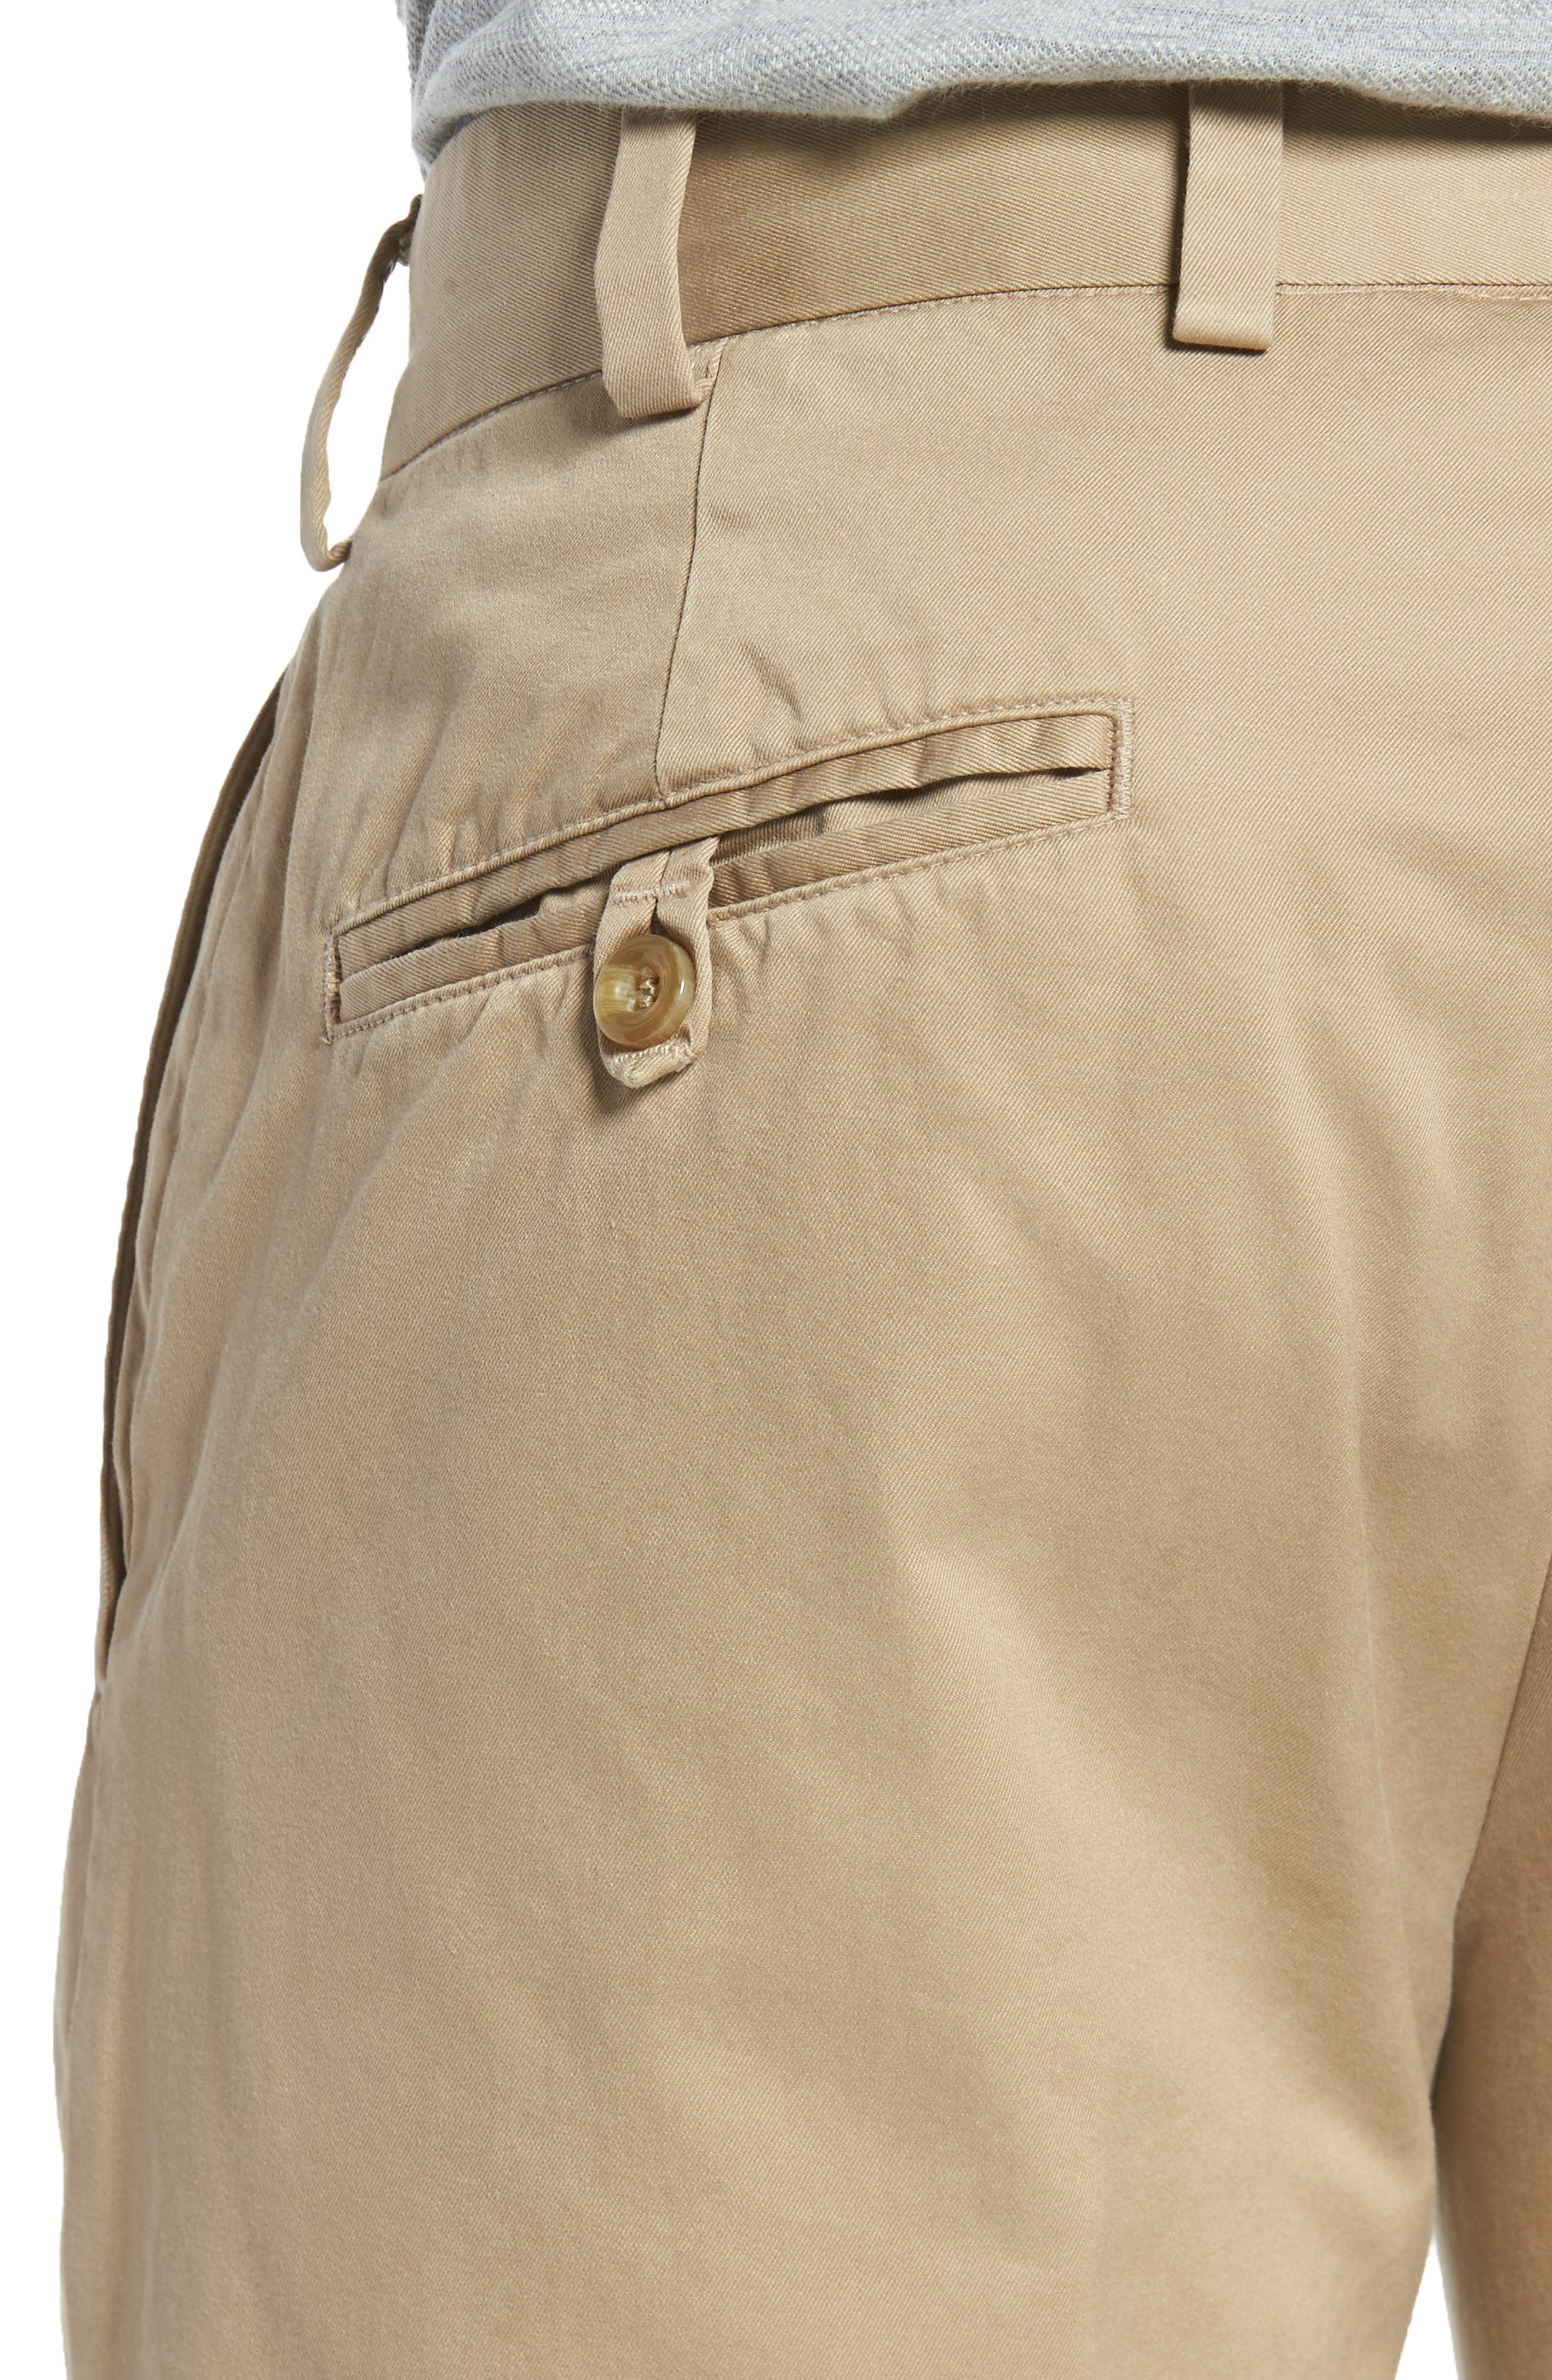 Slim Fit Chamois Cloth Pants,                             Alternate thumbnail 4, color,                             Camel